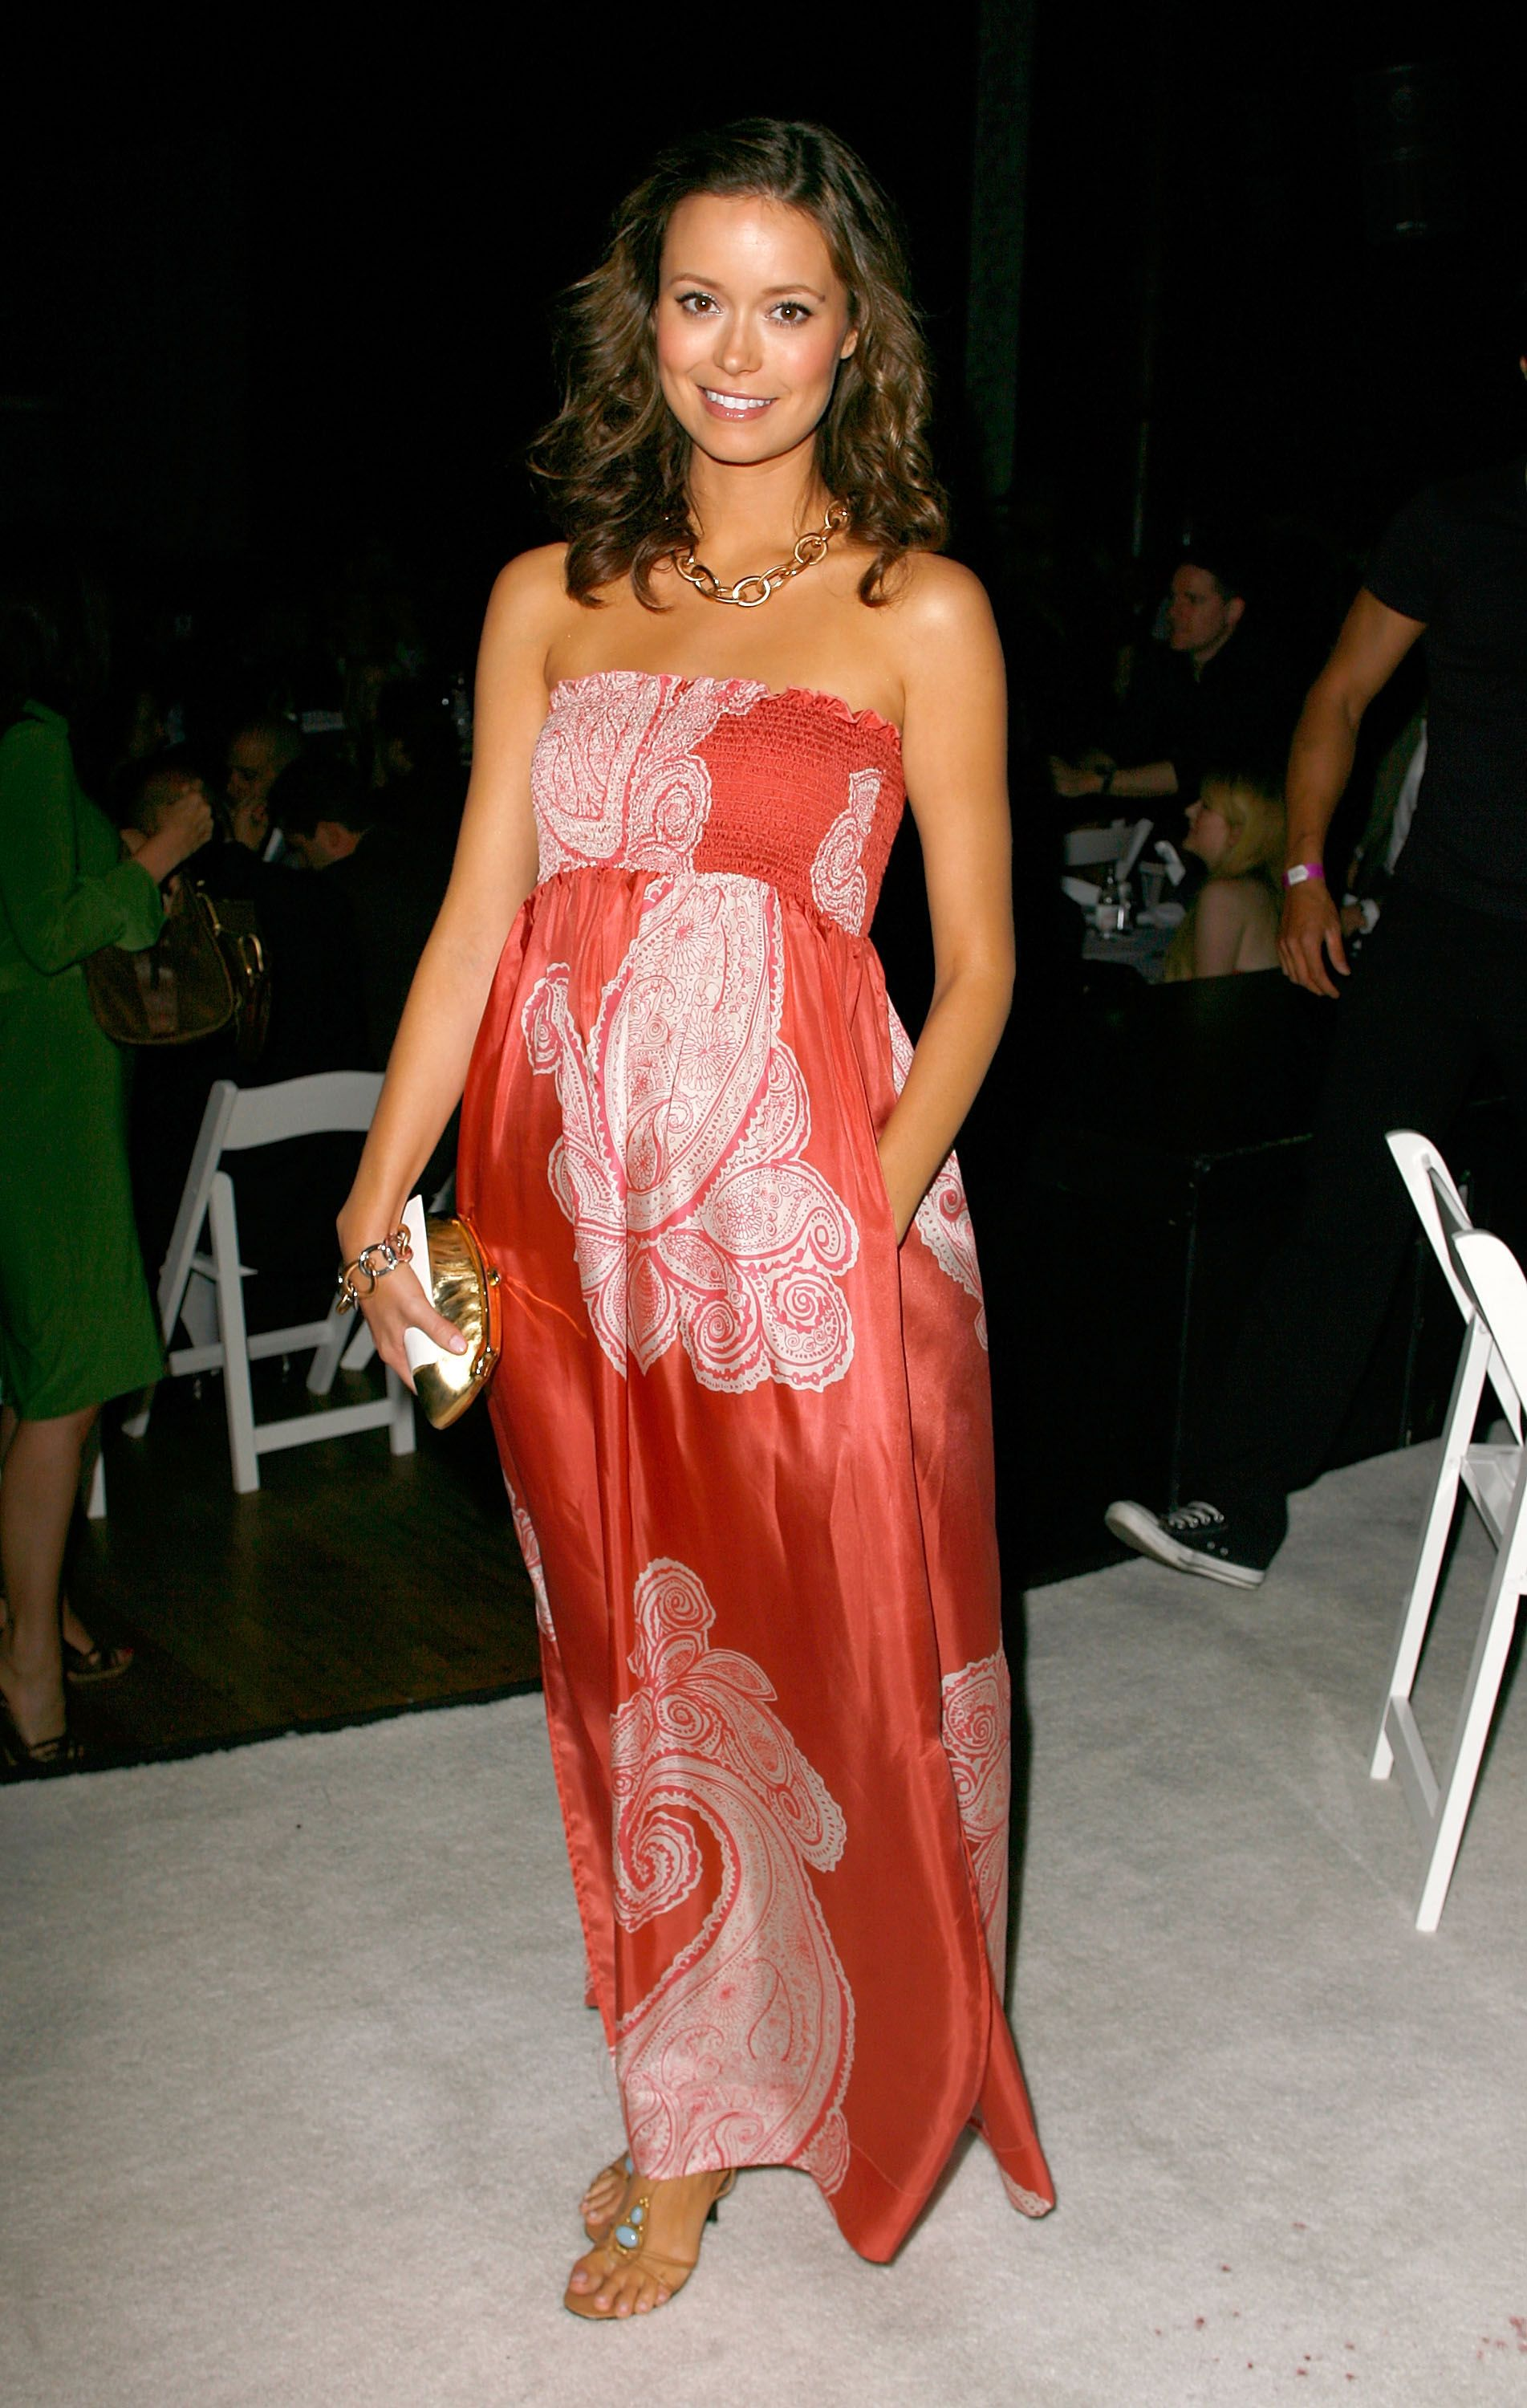 Hollywood Life magazine 10th Annual Young Hollywood Awards - Los Angeles April 27, 2008